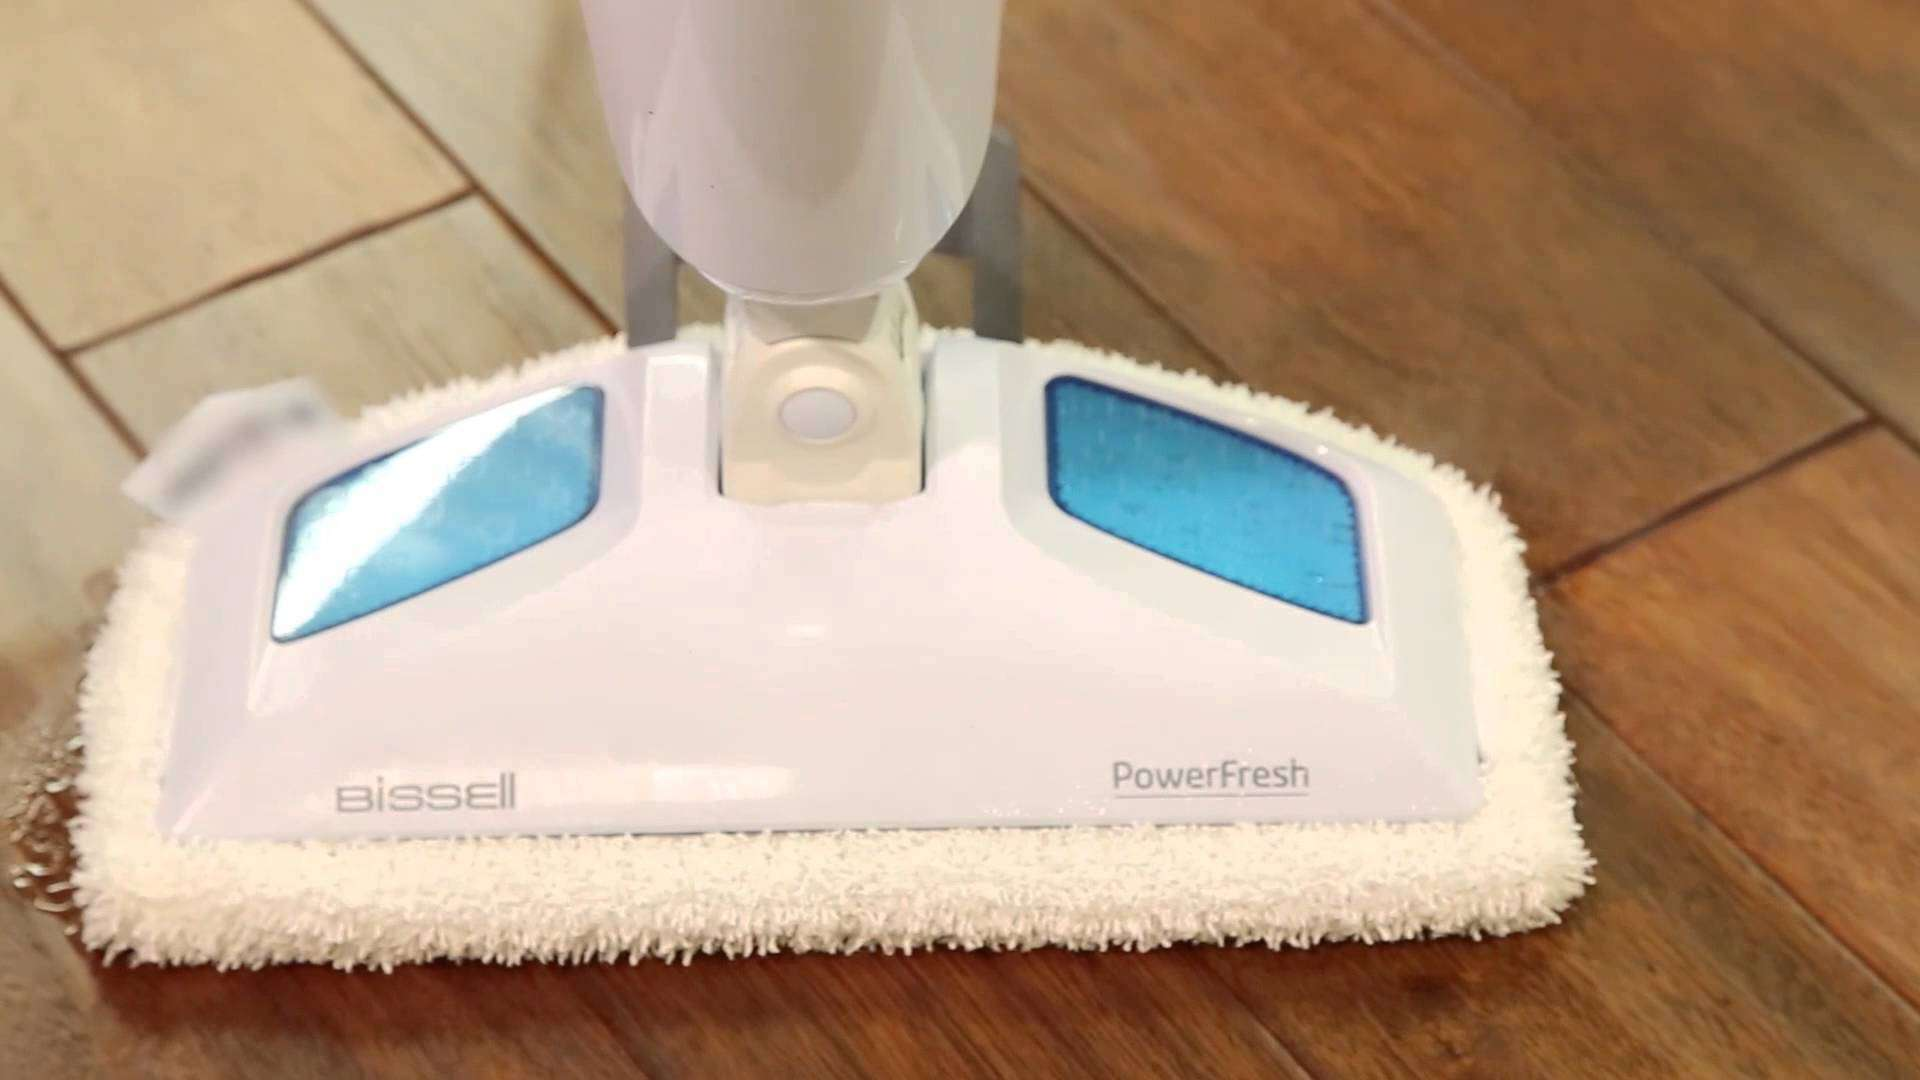 Bissell 1940 PowerFresh Steam Mop Hard Floor Steam Cleaner